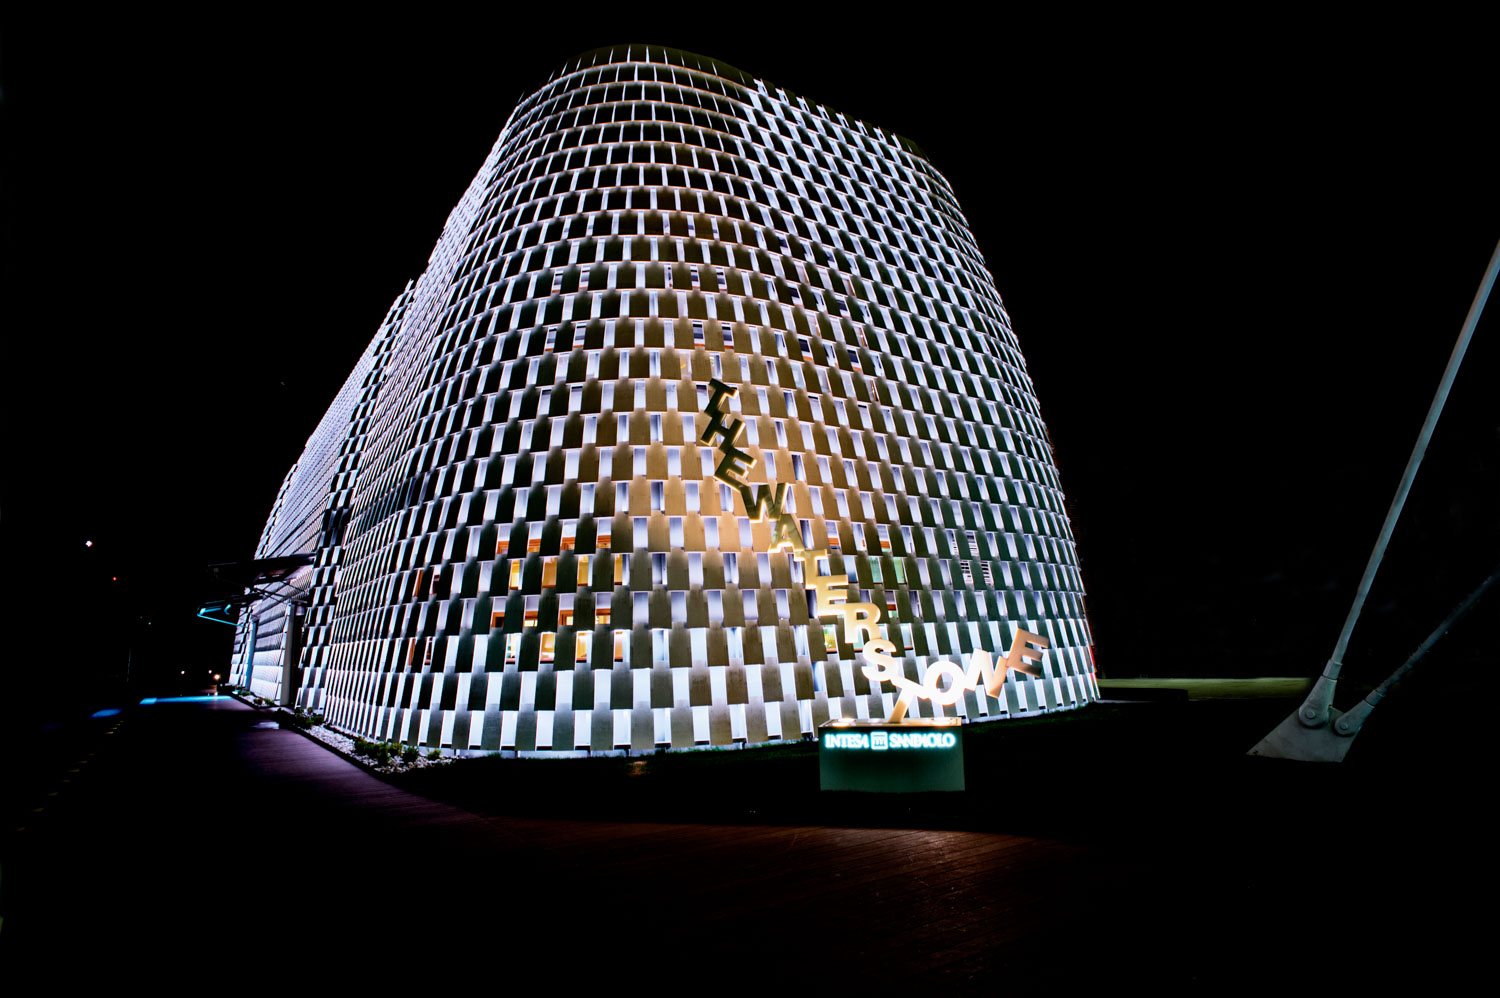 expo 2015-studiogabriotomelleri-Expo by night